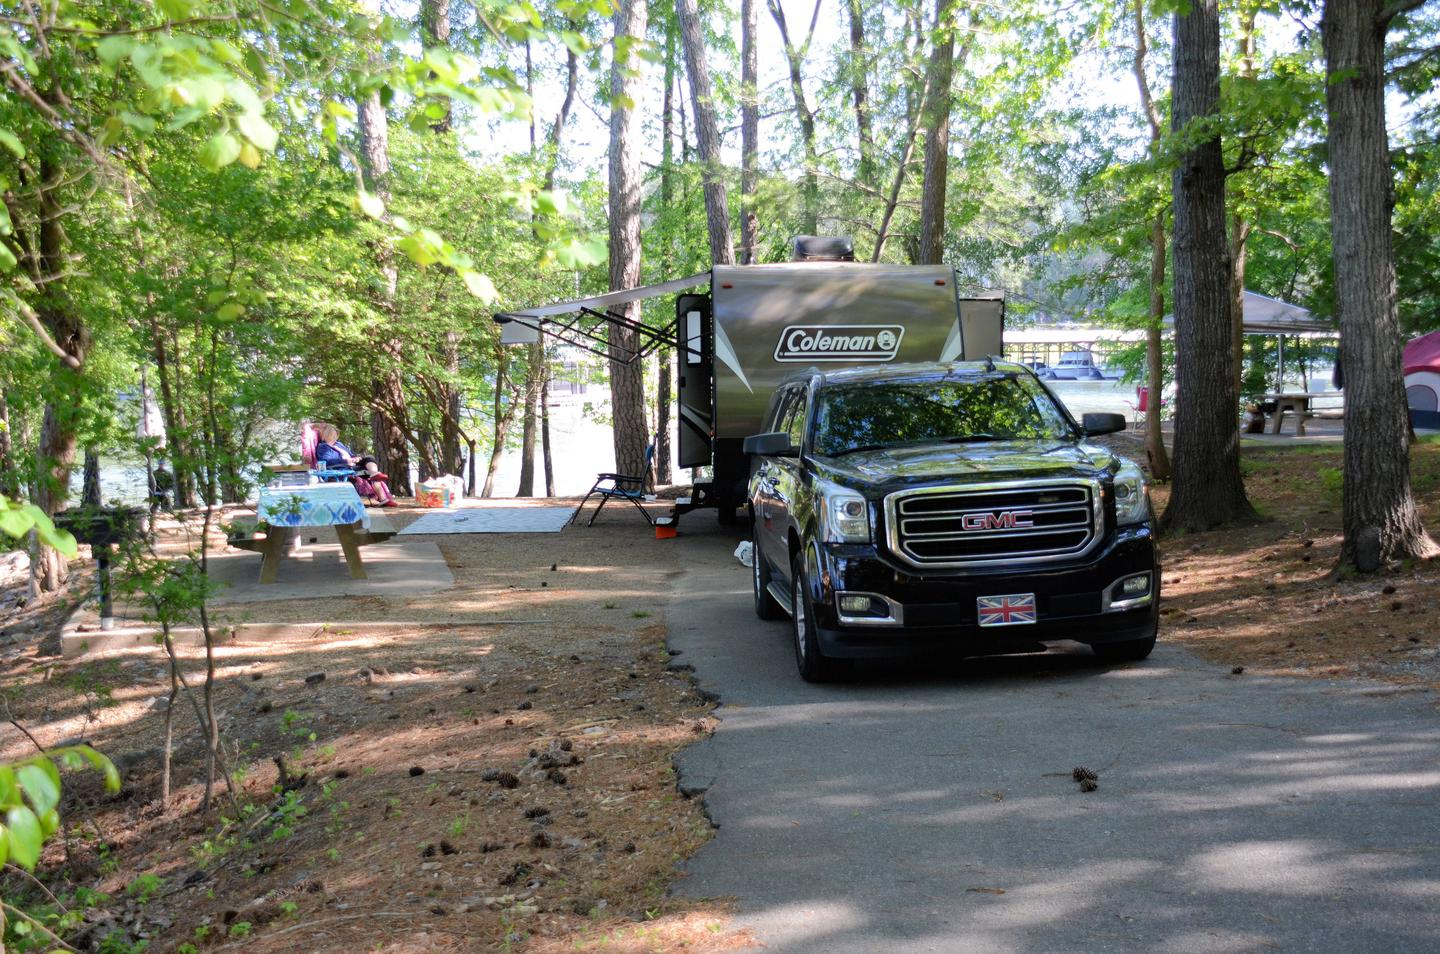 Driveway slope, awning-side clearanceMcKinney Campground, campsite 28.